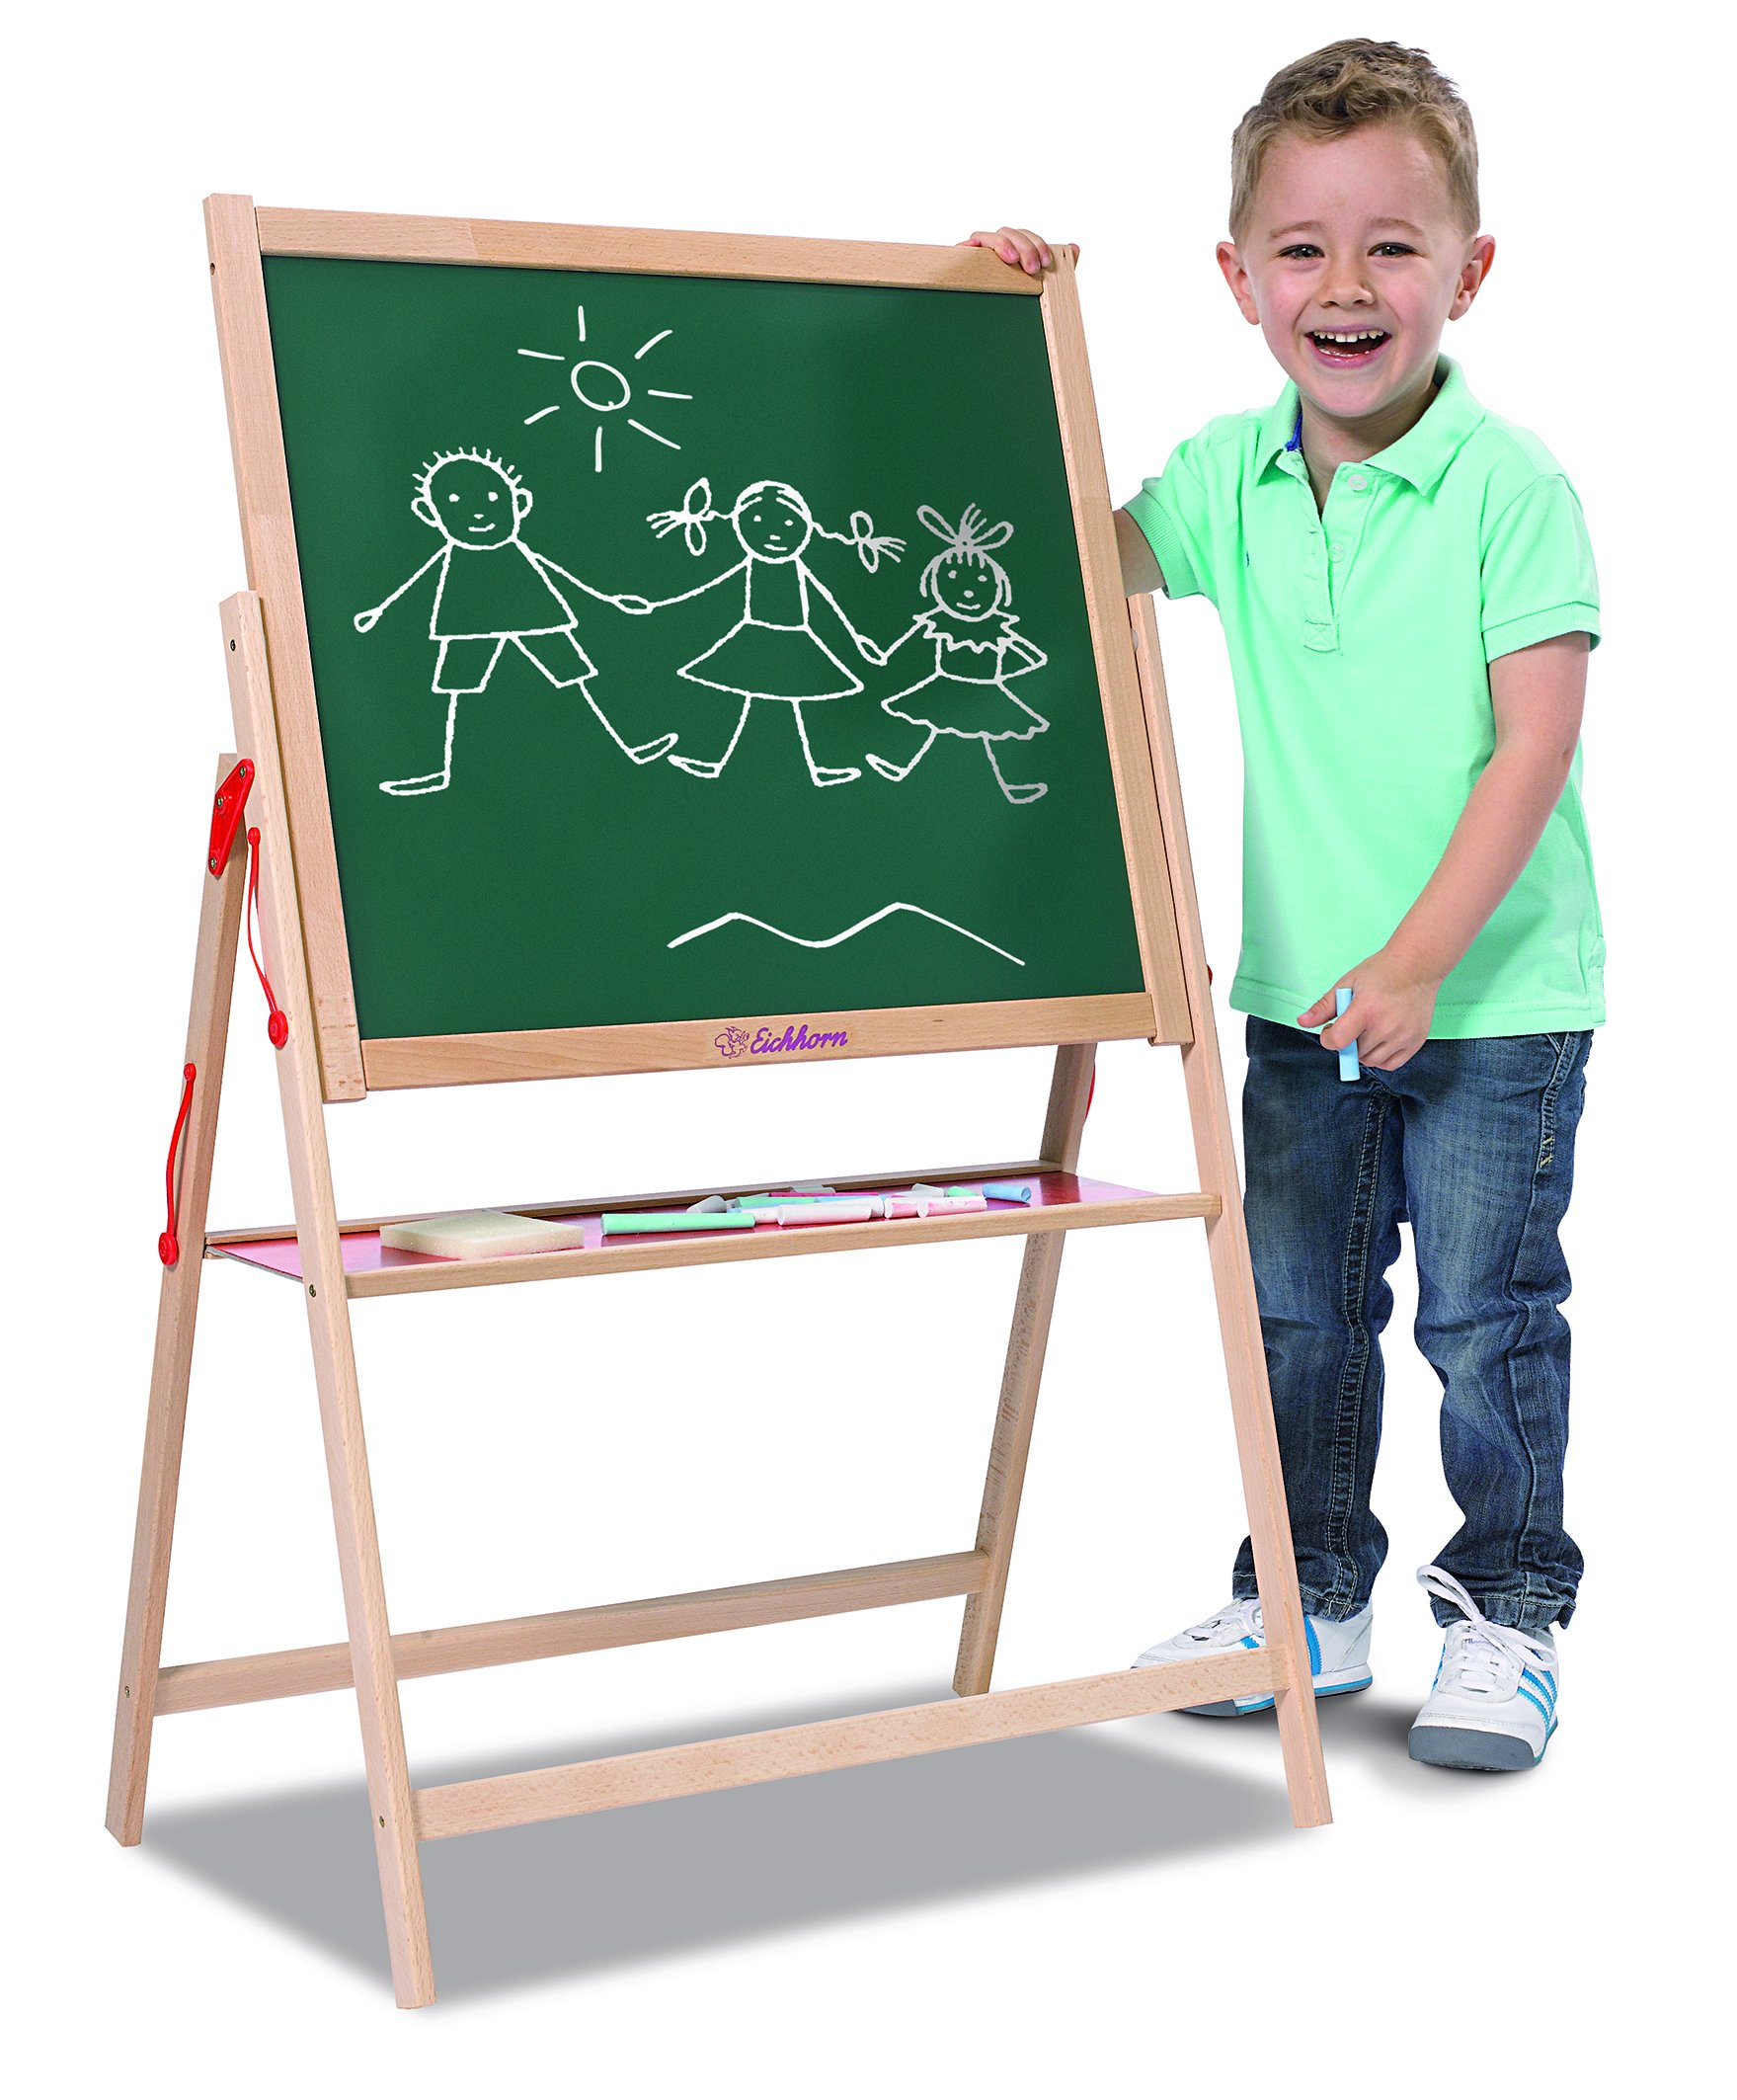 Eichhorn 100002578 Magnetic Board 35 x 56 x 87 cm with 10 Chalks 1 Sponge Beech Wood